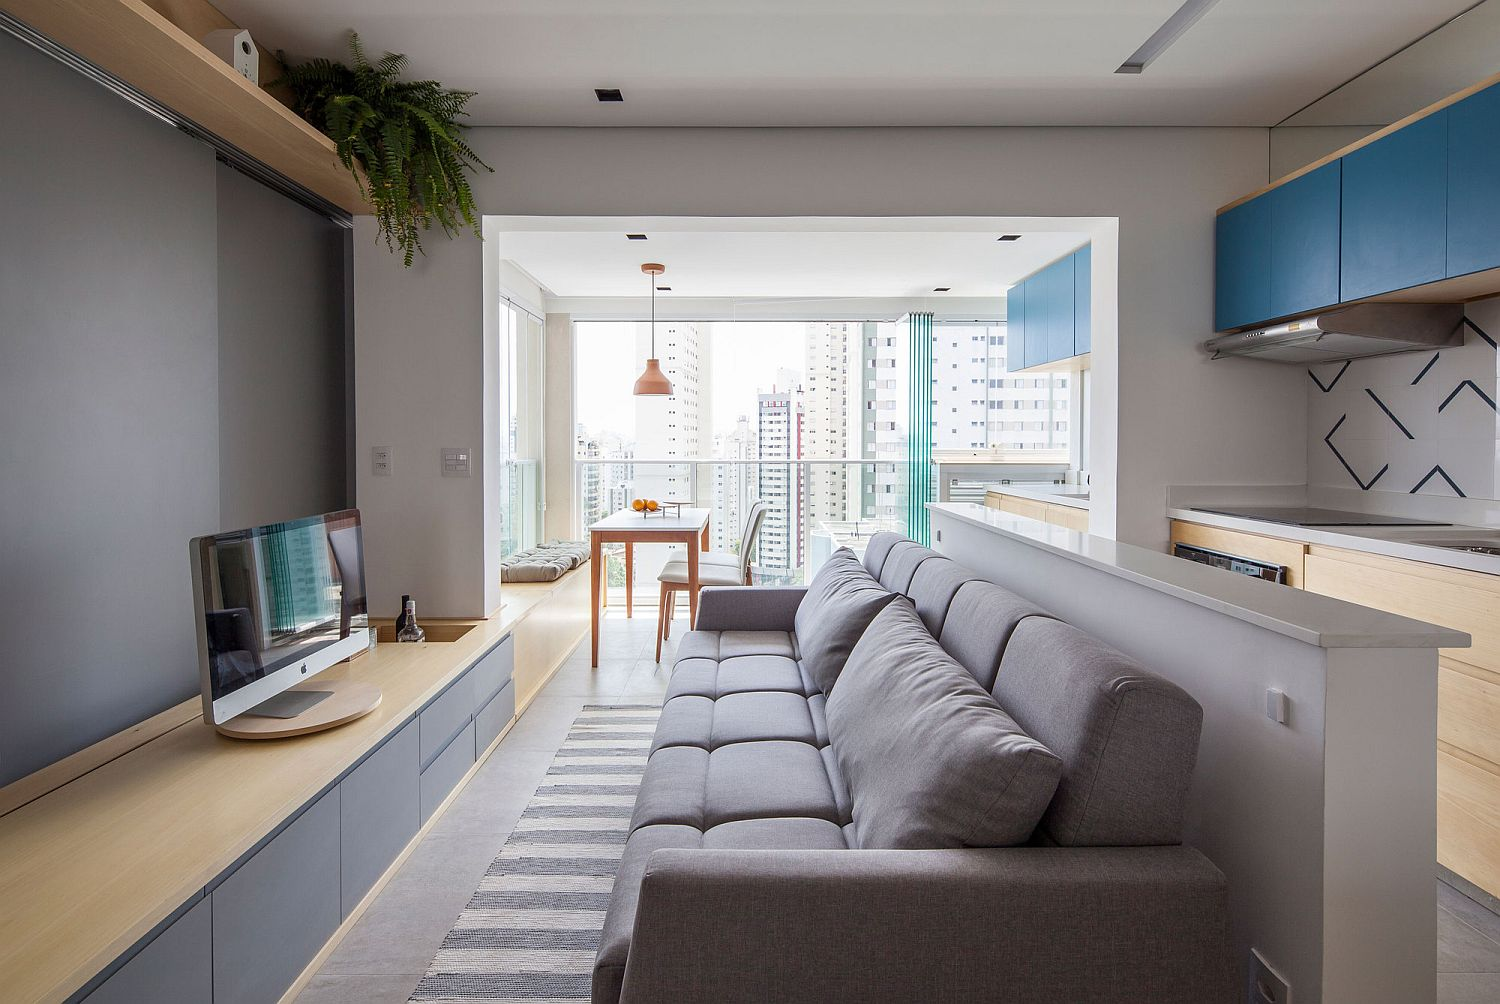 Comfy living area with plush sofa in gray